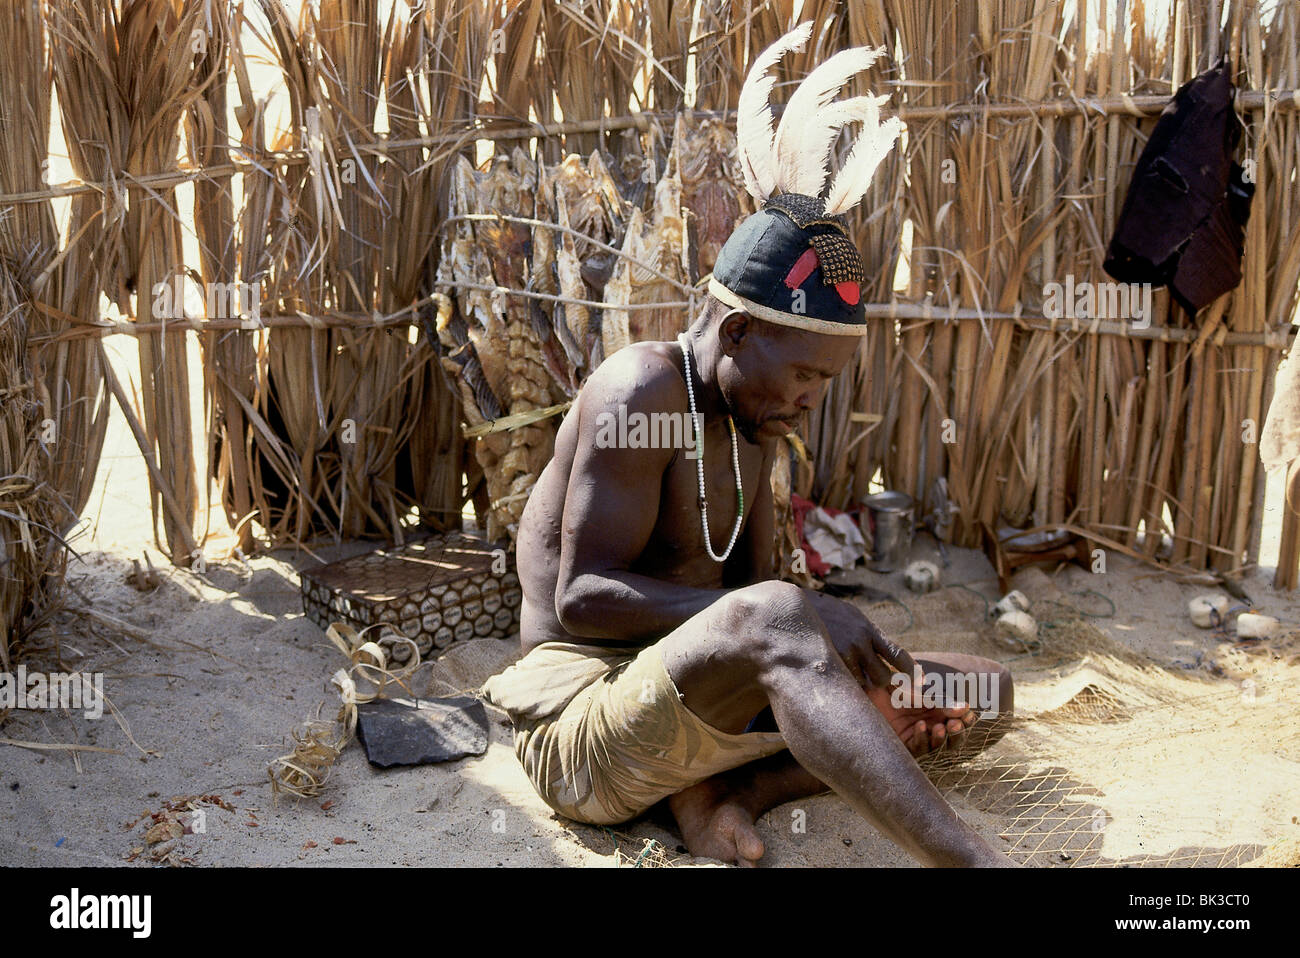 Kenyan near Lake Turkana, repairing a fishing net, Kenya - Stock Image